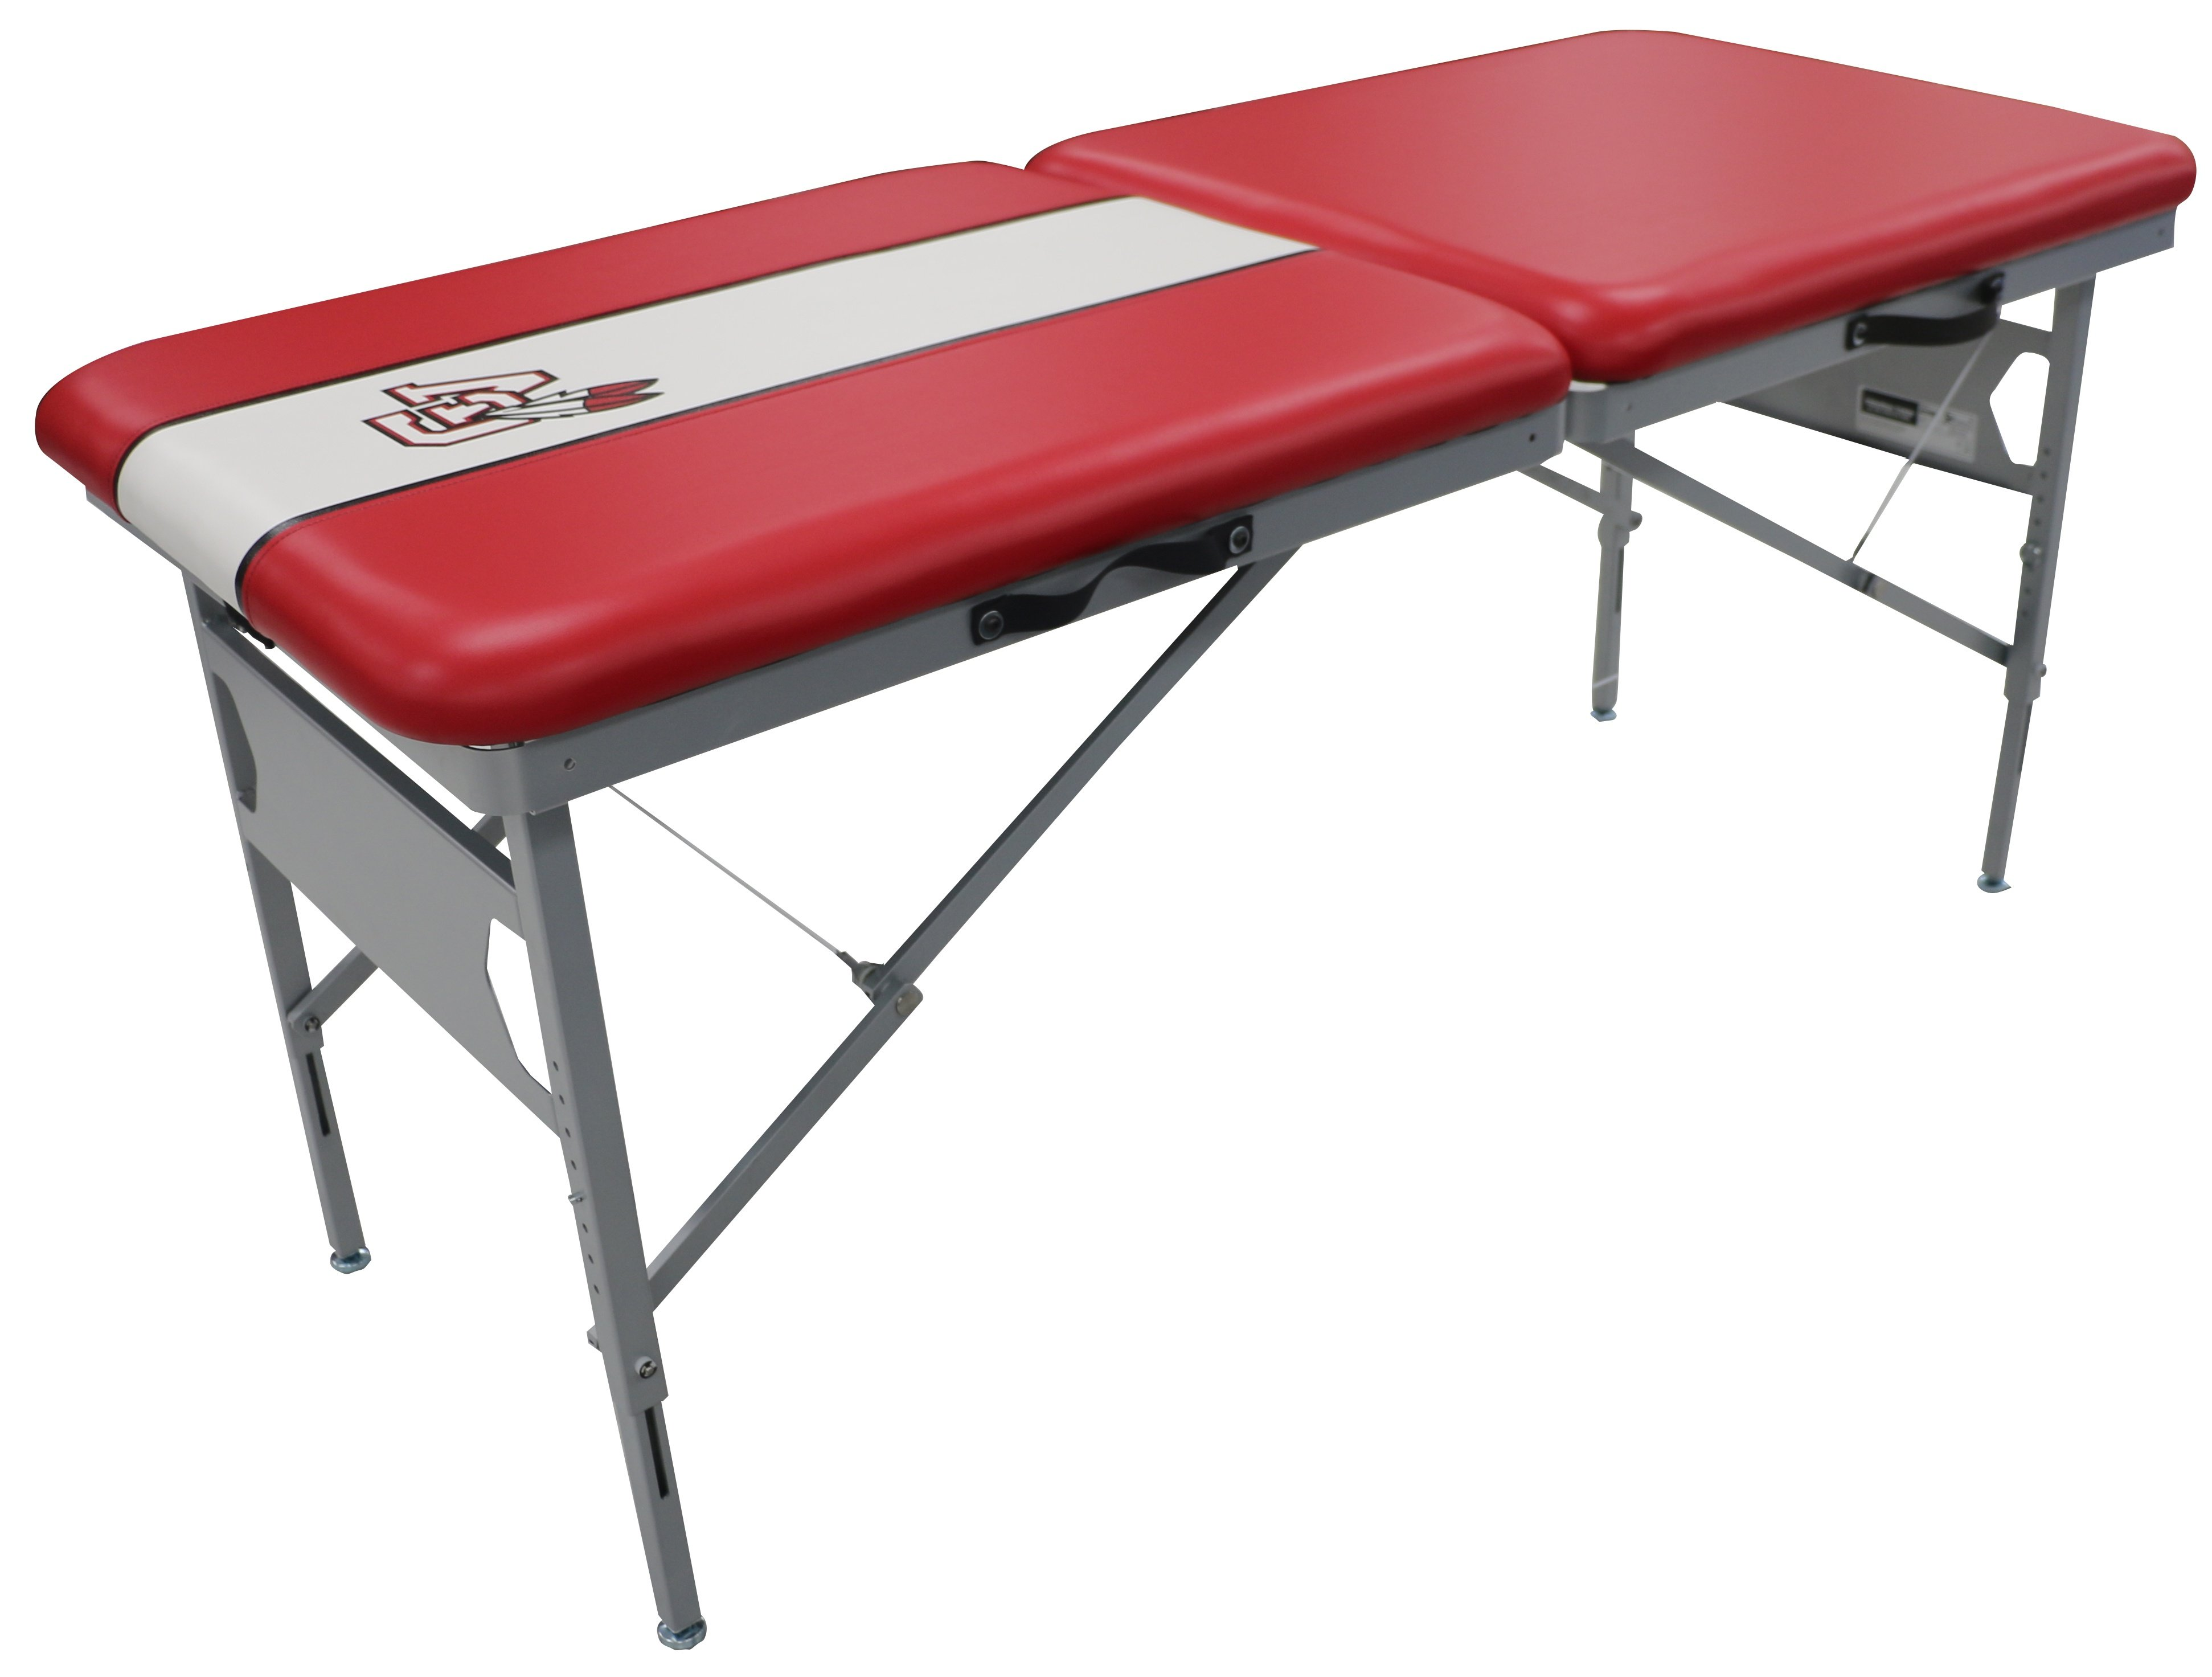 Chippewa-Portable Sideline Table